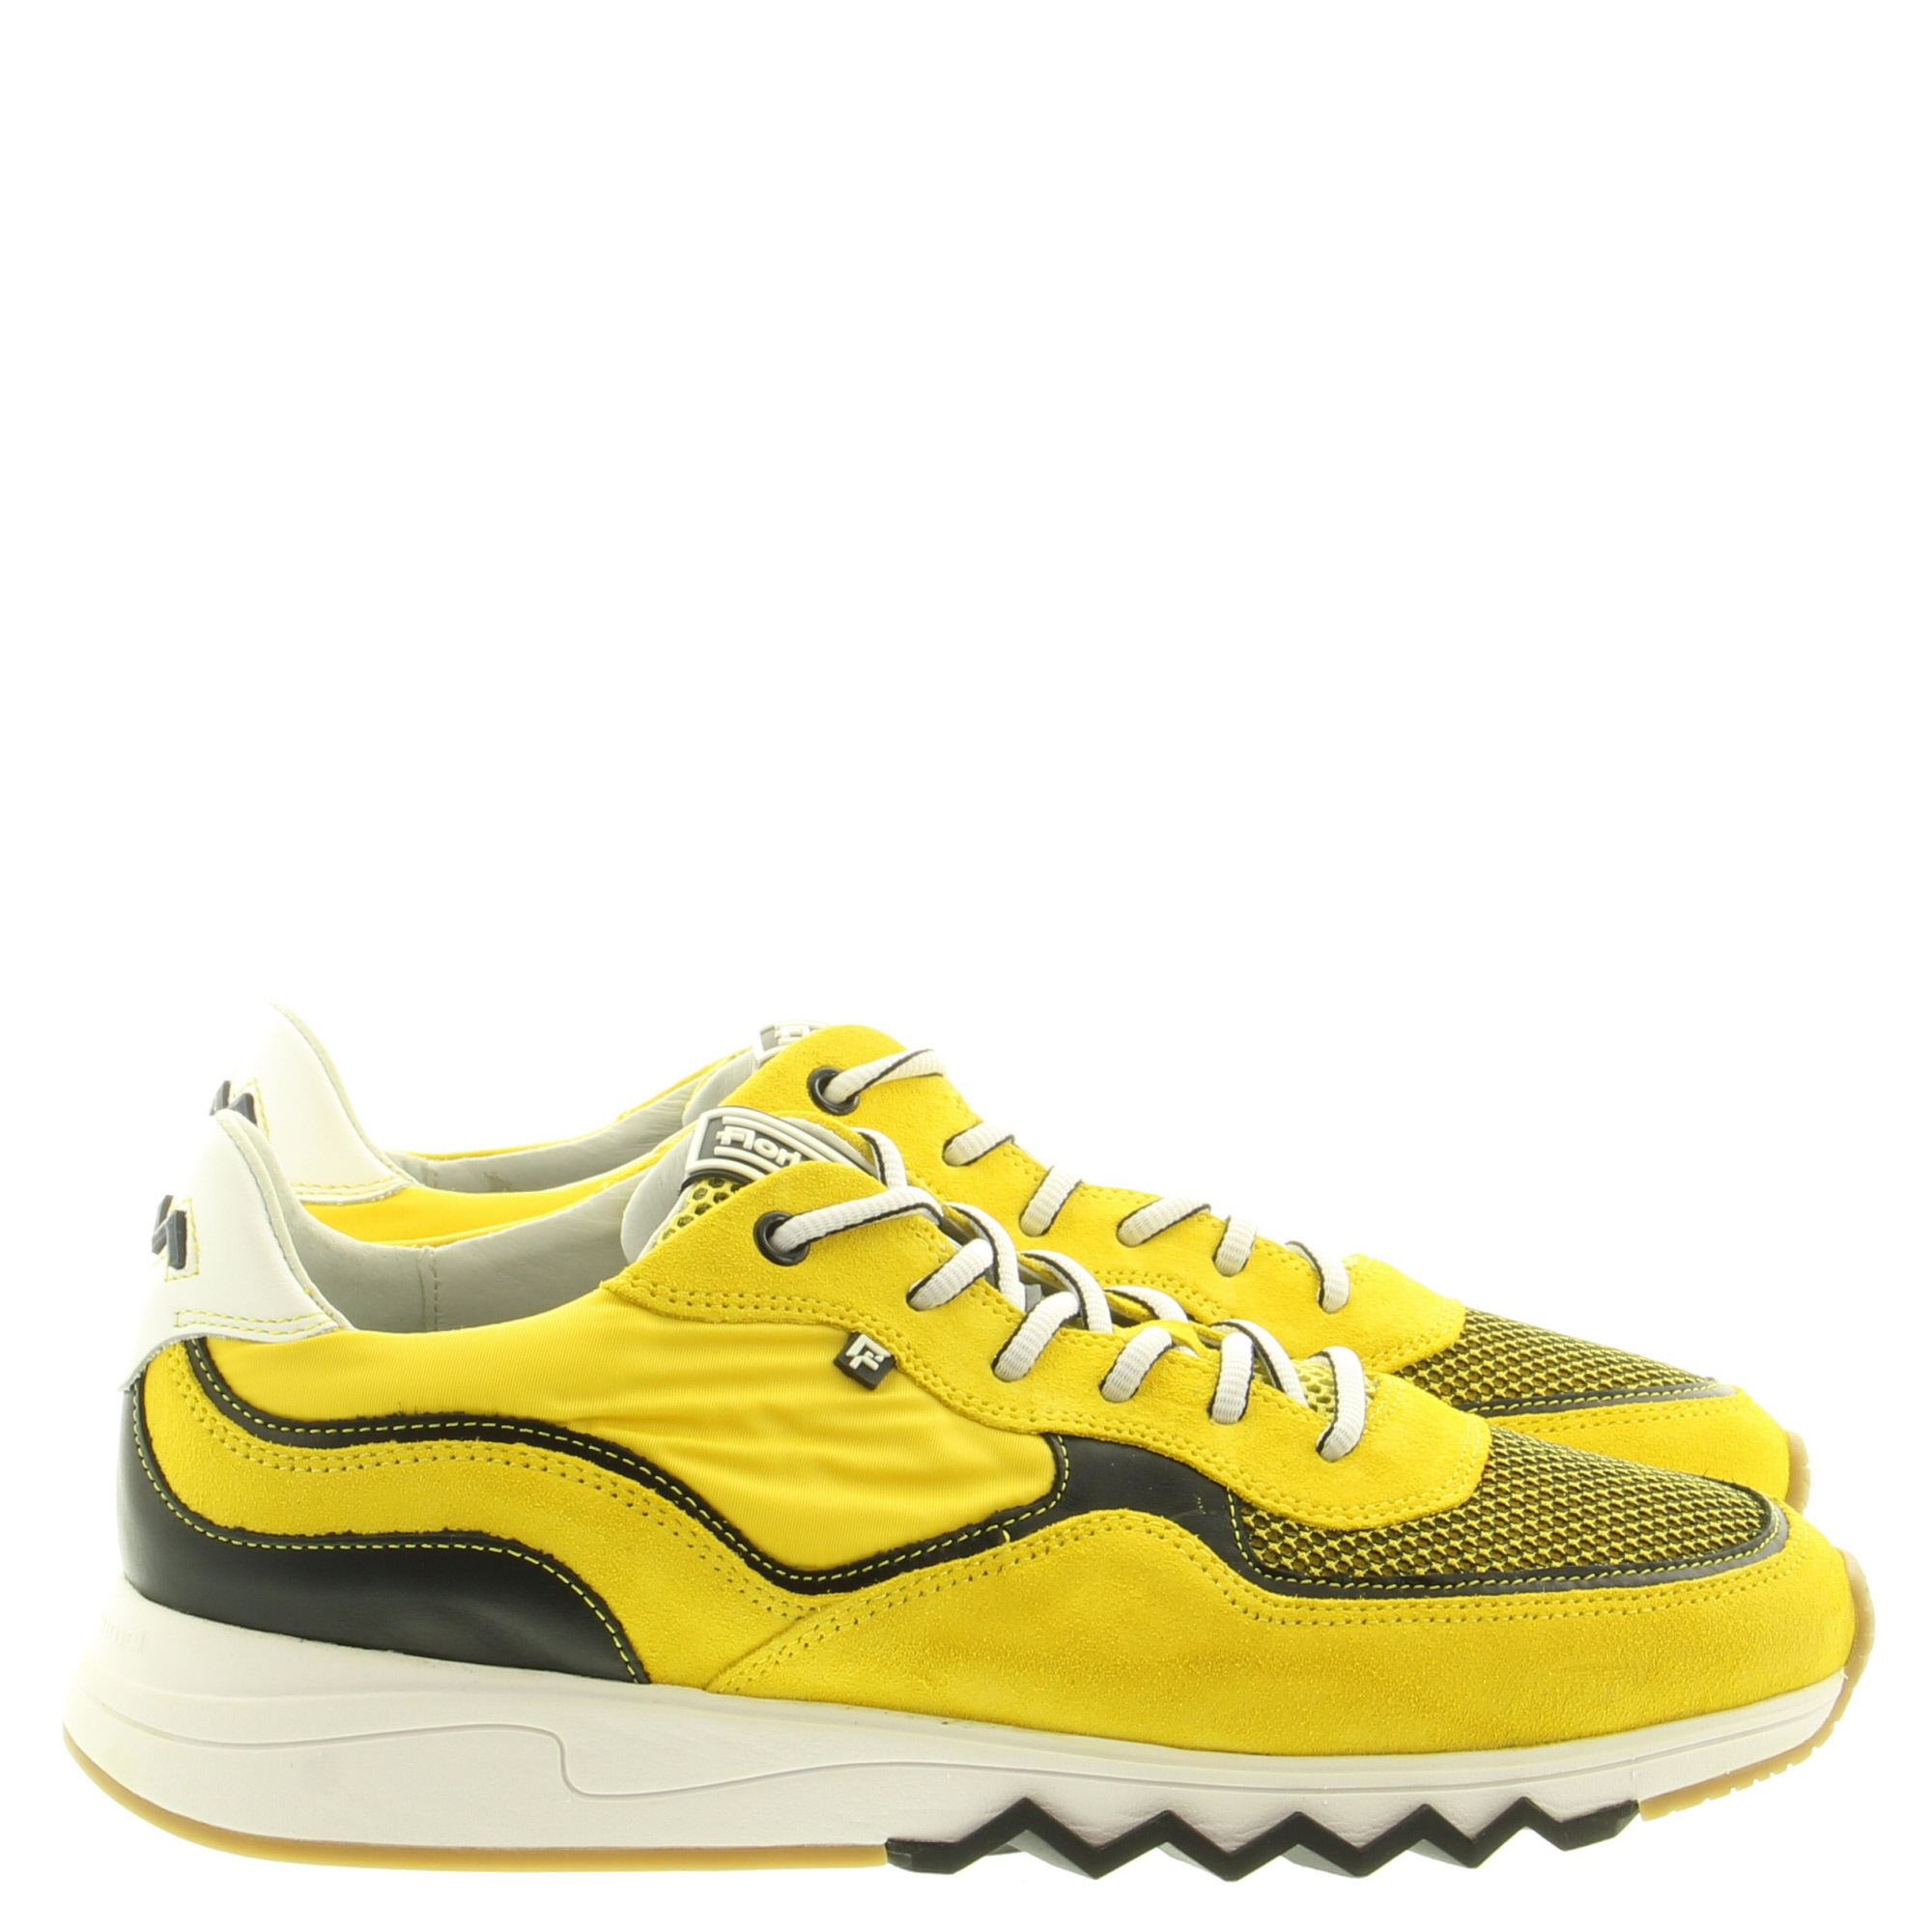 Floris van Bommel 16392 05 Yellow